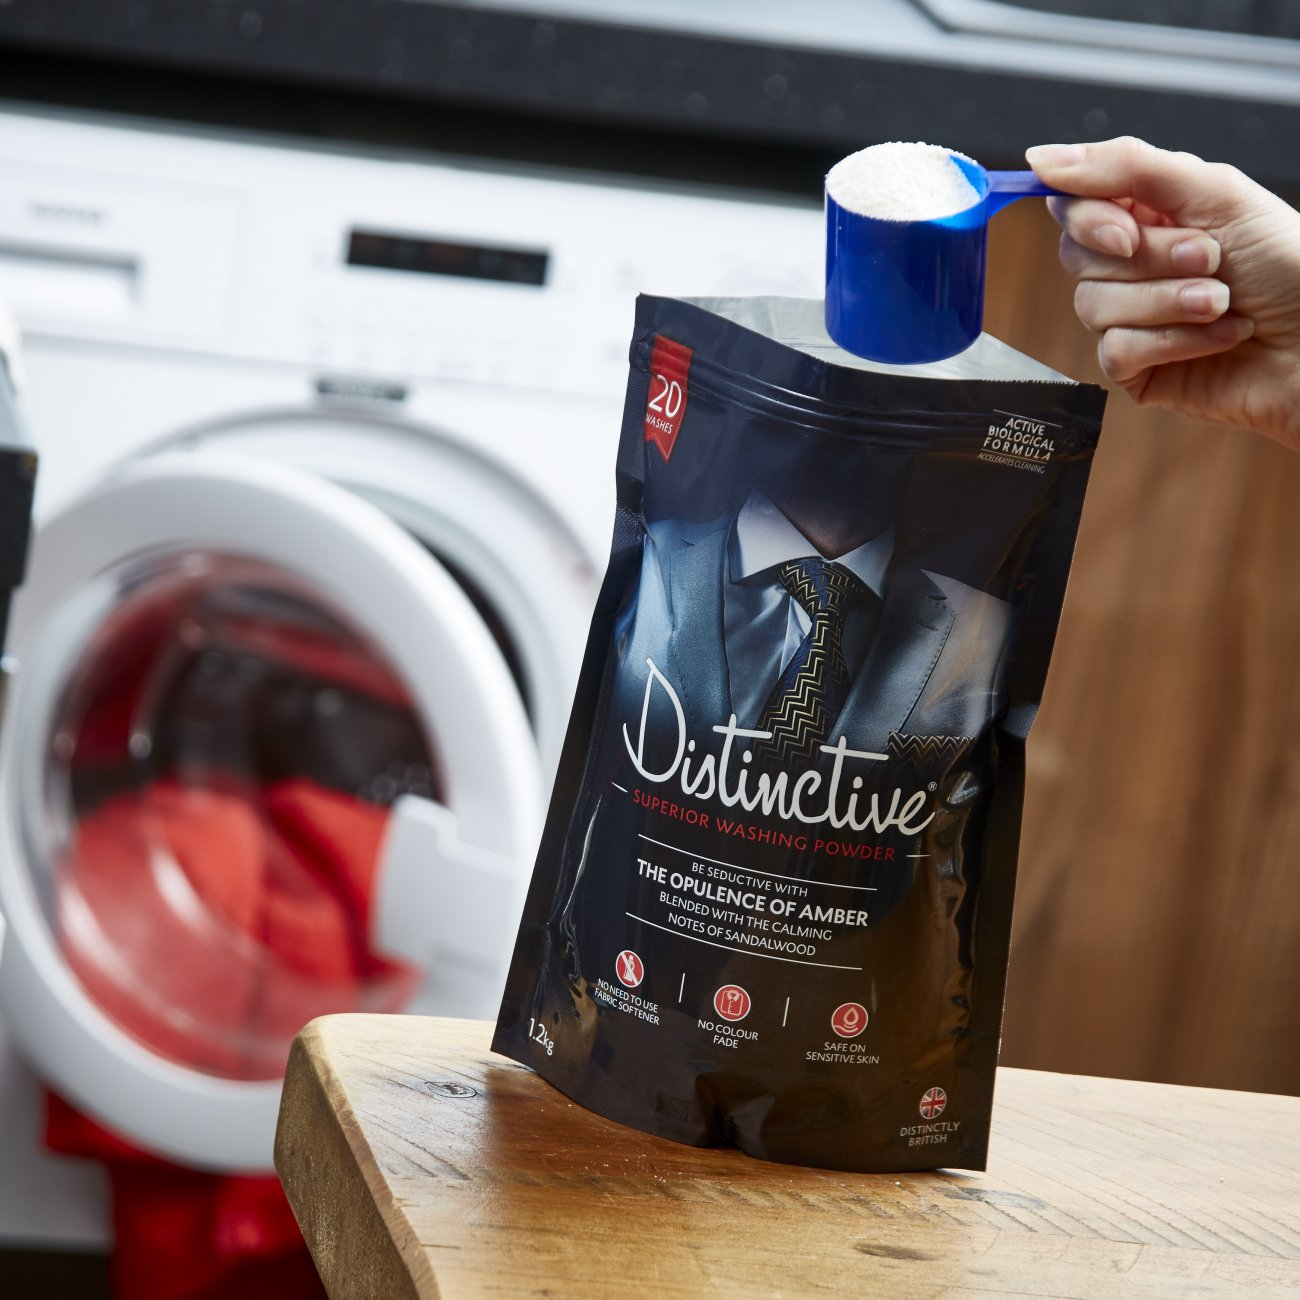 Distinctive Washing Powder perfect with all washing machines